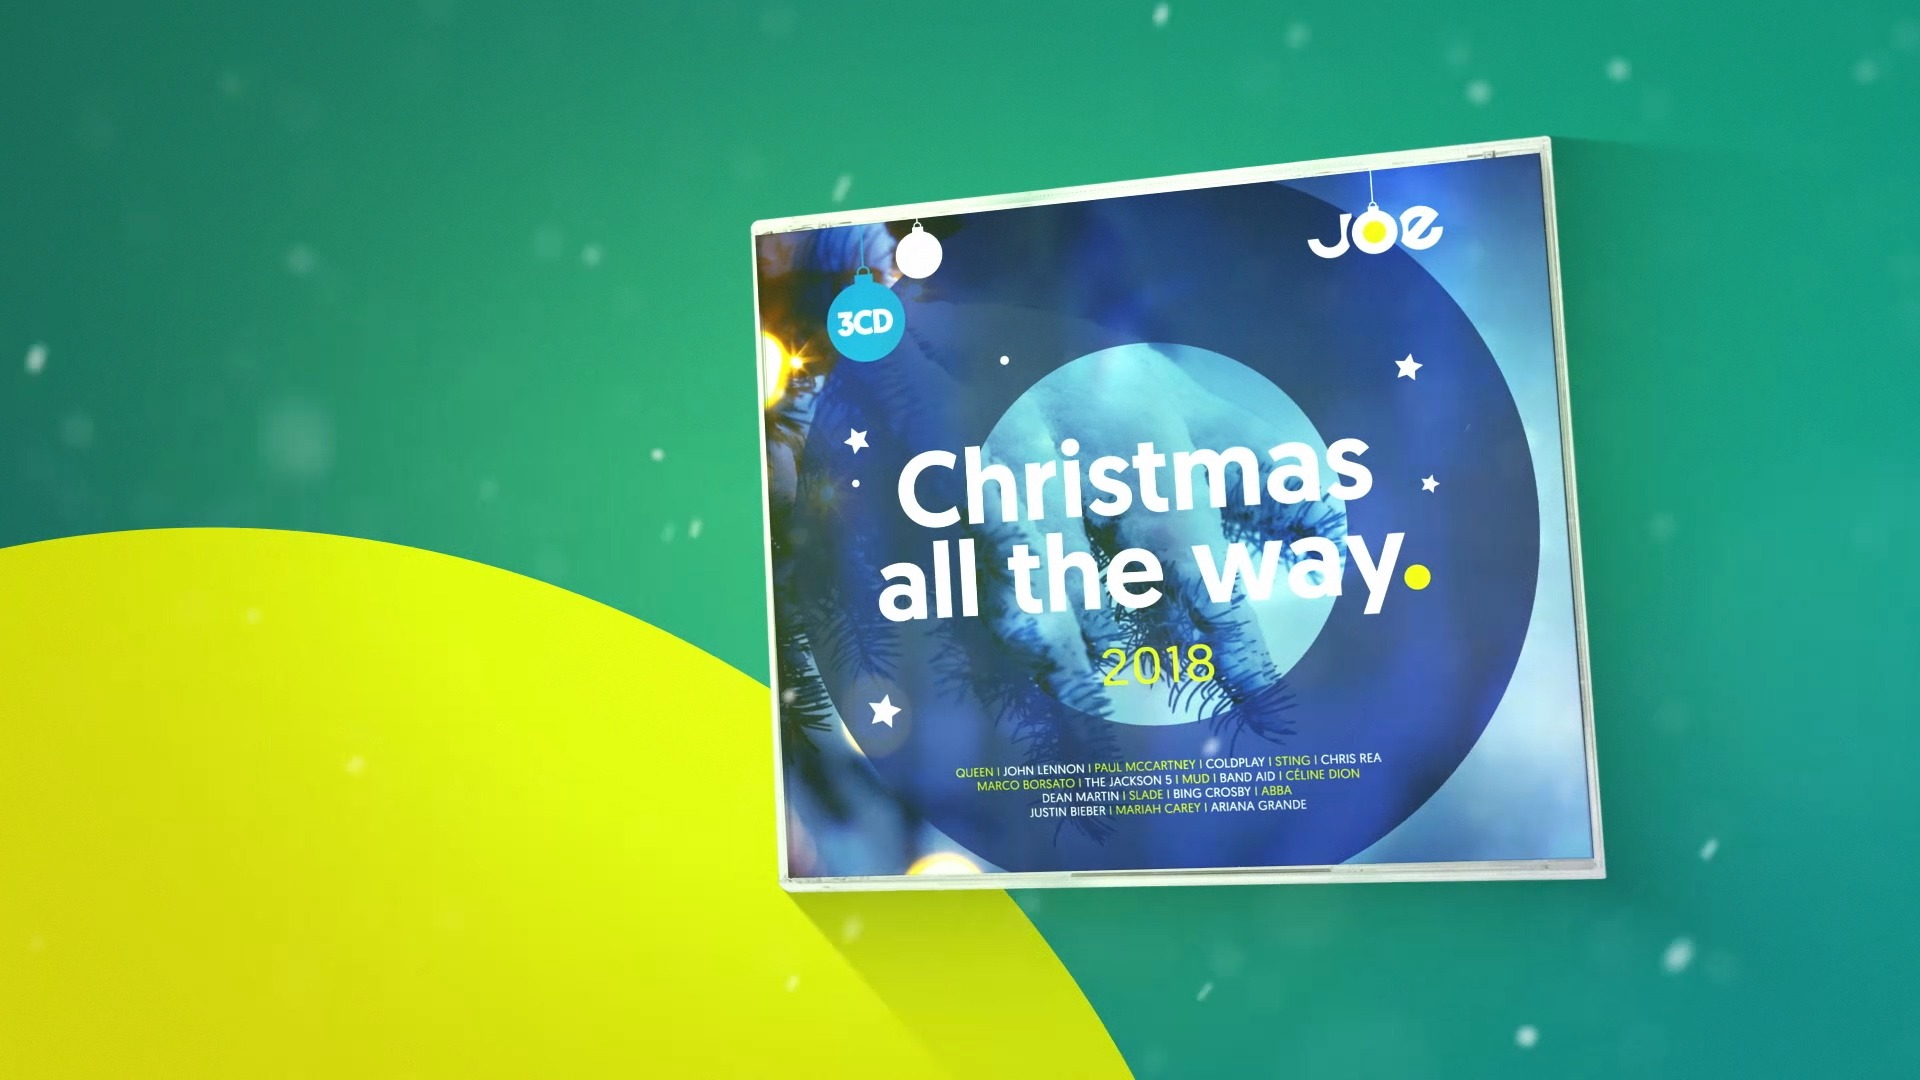 Joe christmasalltheway cd